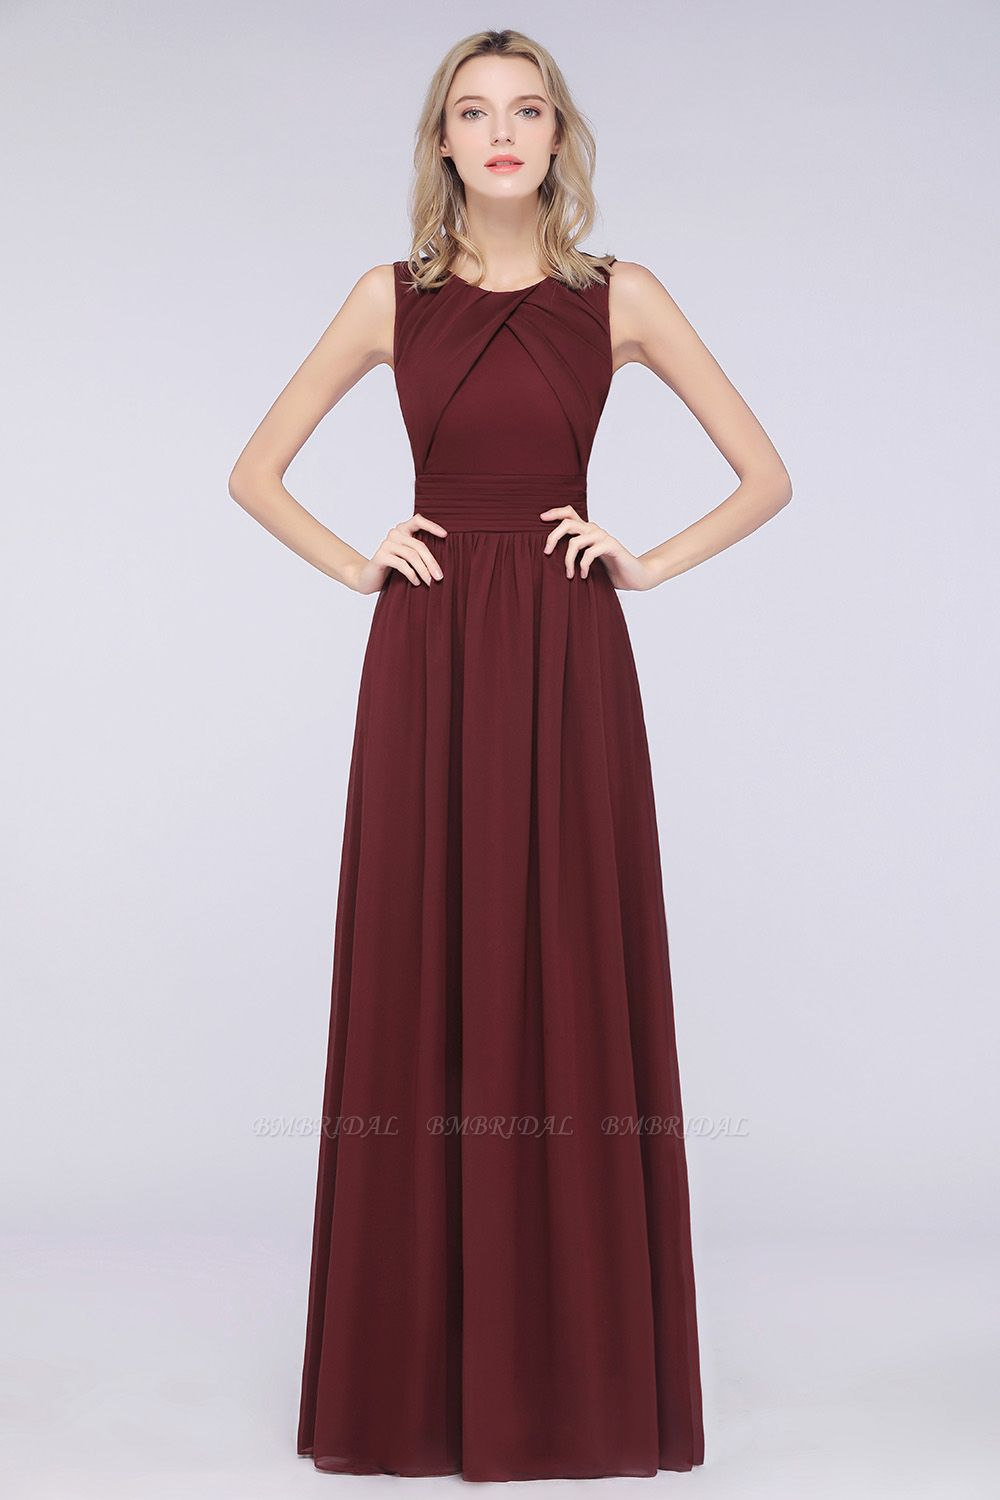 BMbridal Modest Round-Neck Sleeveless Burgundy Bridesmaid Dresses with Ruffles